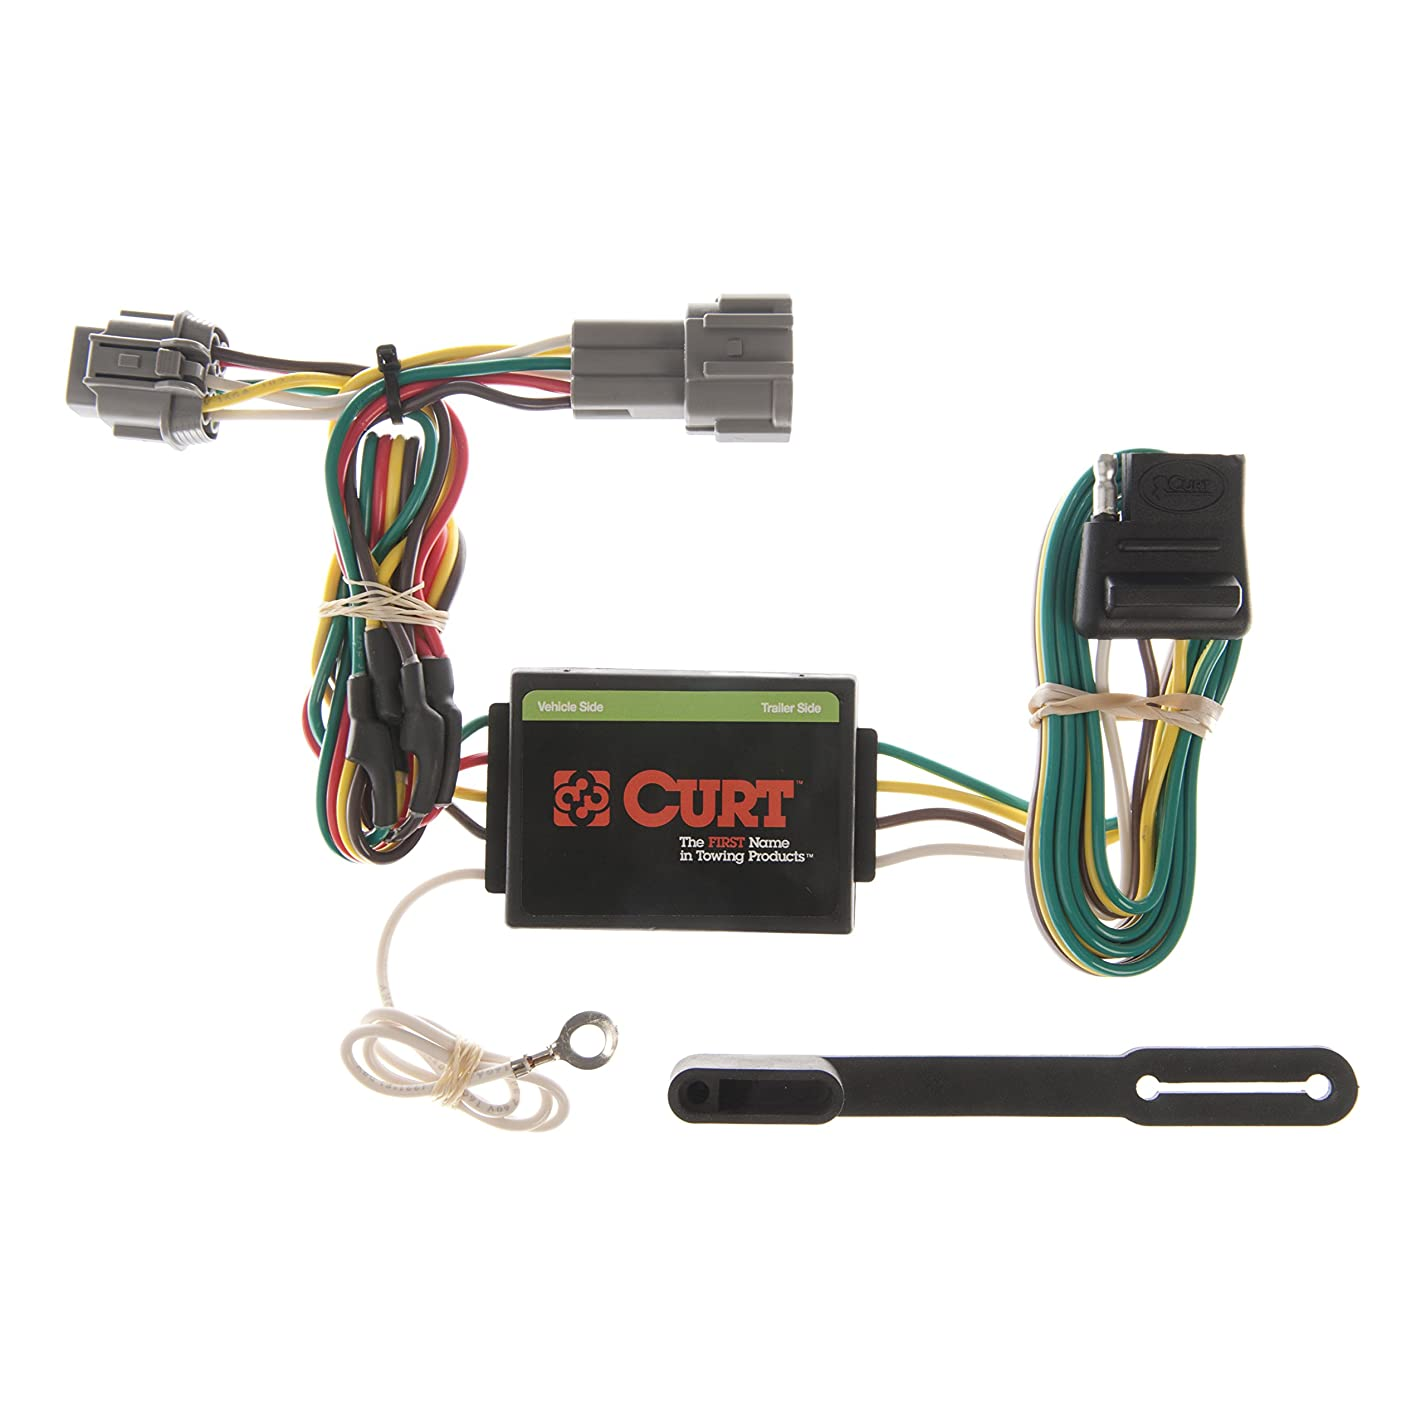 CURT 55362 Vehicle-Side Custom 4-Pin Trailer Wiring Harness for Select Nissan Frontier, Quest, Mercury Villager bsc631537568806